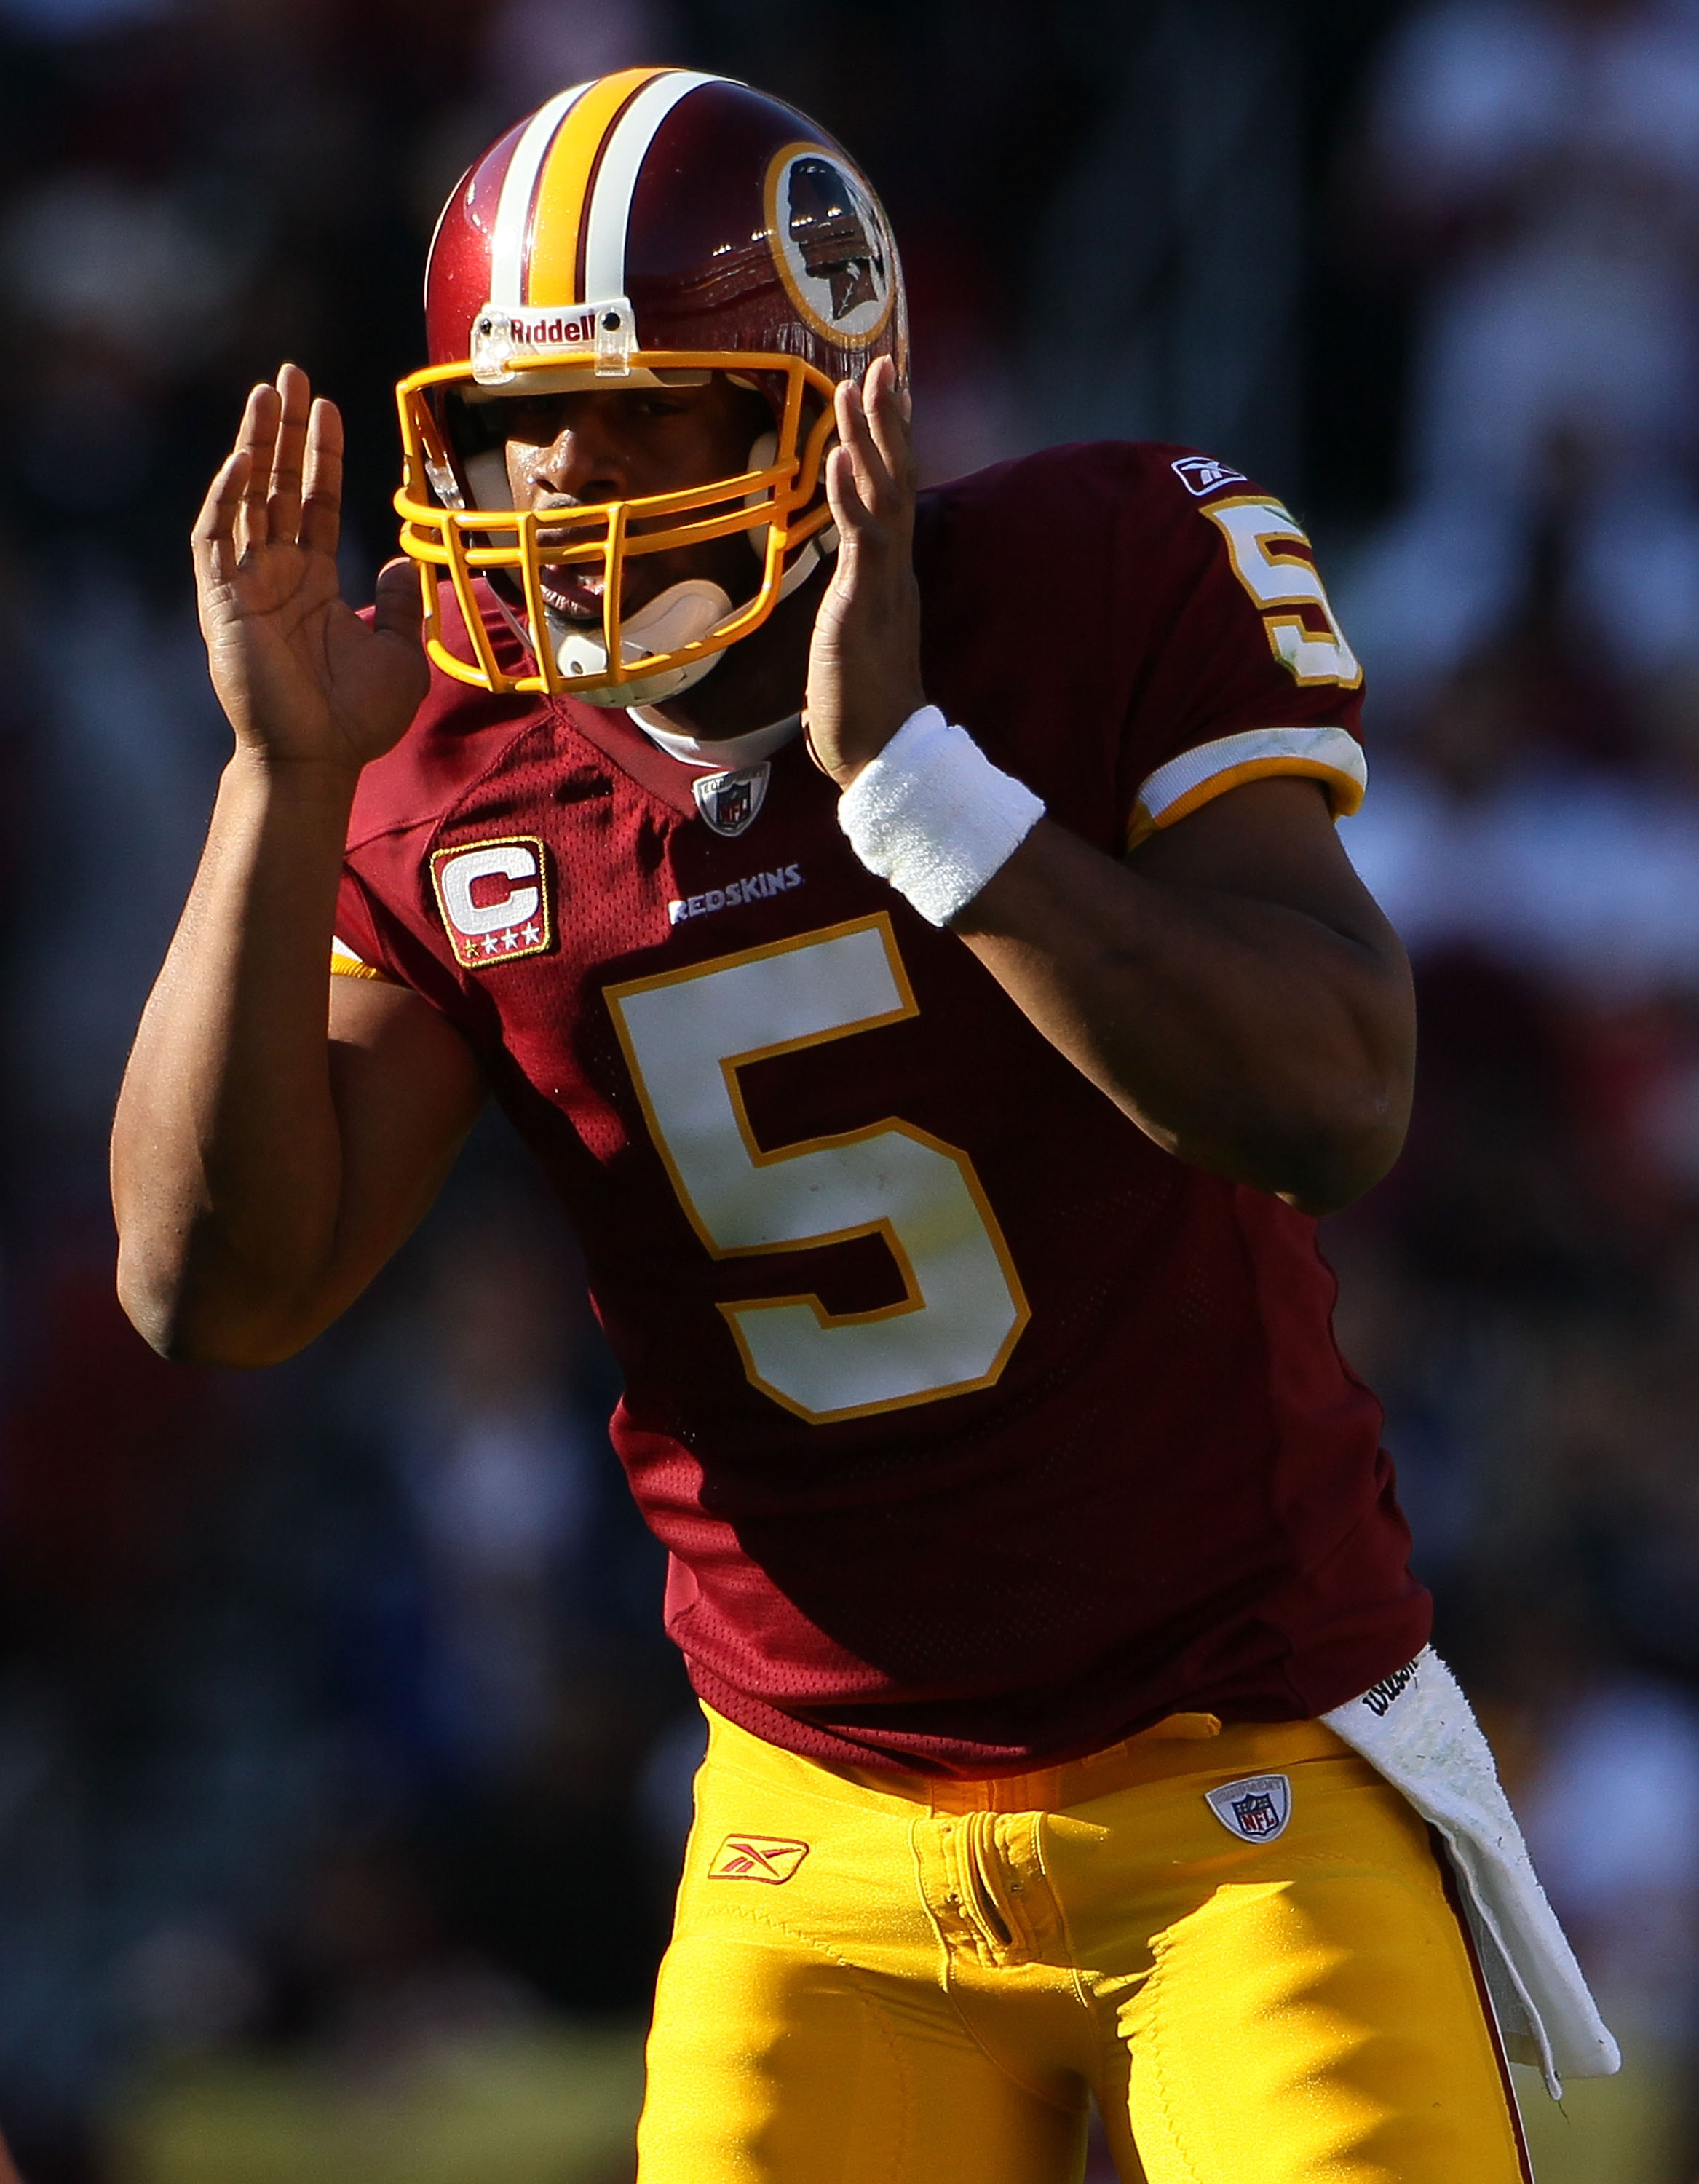 LANDOVER, MD - NOVEMBER 28:  Quarterback Donovan McNabb #5 calls out signals against the Minnesota Vikings at FedExField November 28, 2010 in Landover, Maryland. The Vikings won the game 17-13.  (Photo by Win McNamee/Getty Images)